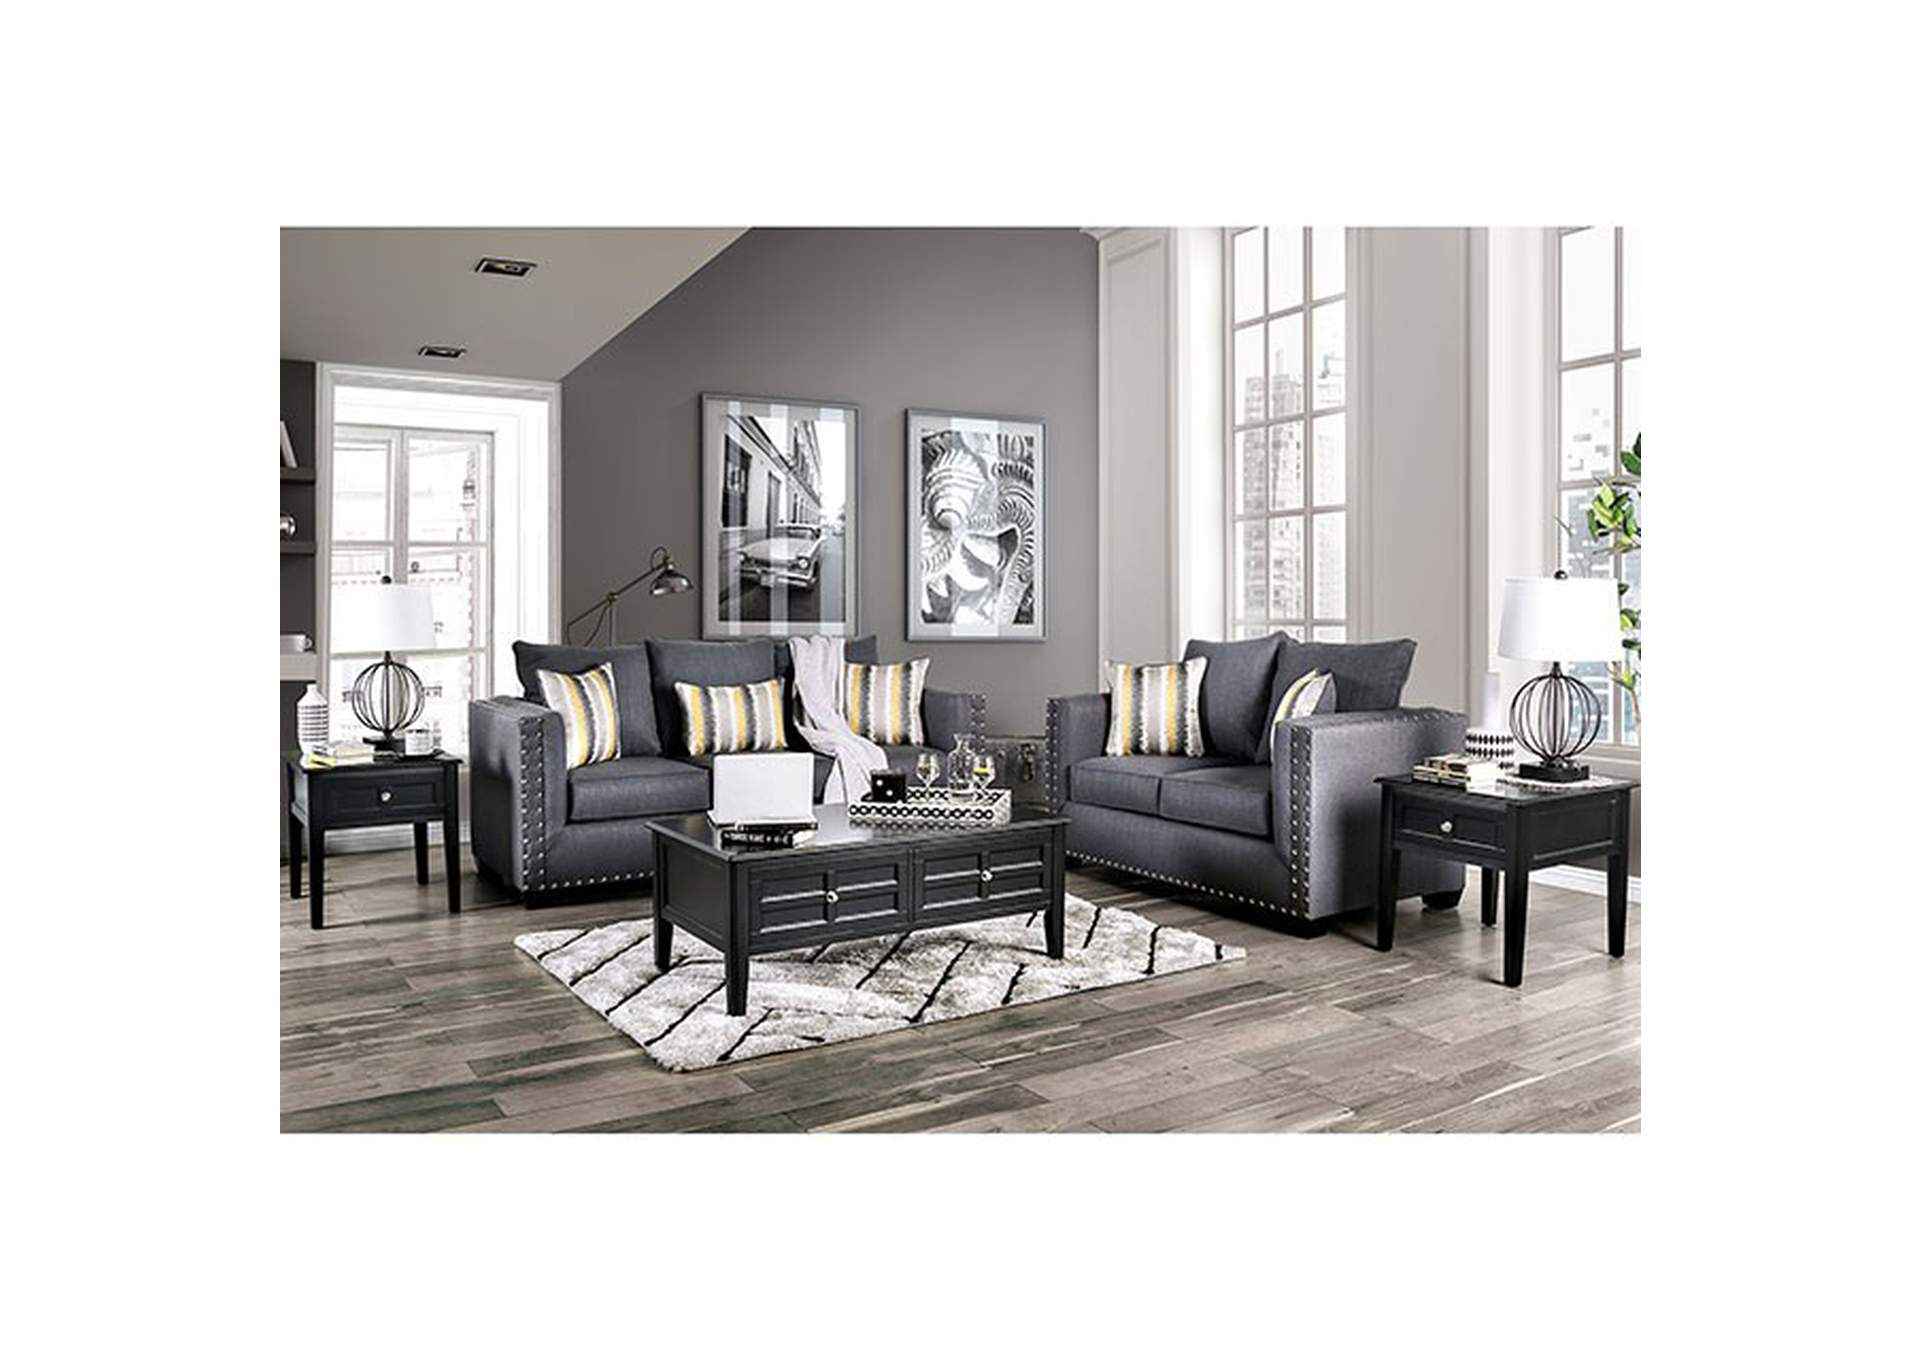 Inkom Blue Stationary Sofa,Furniture of America